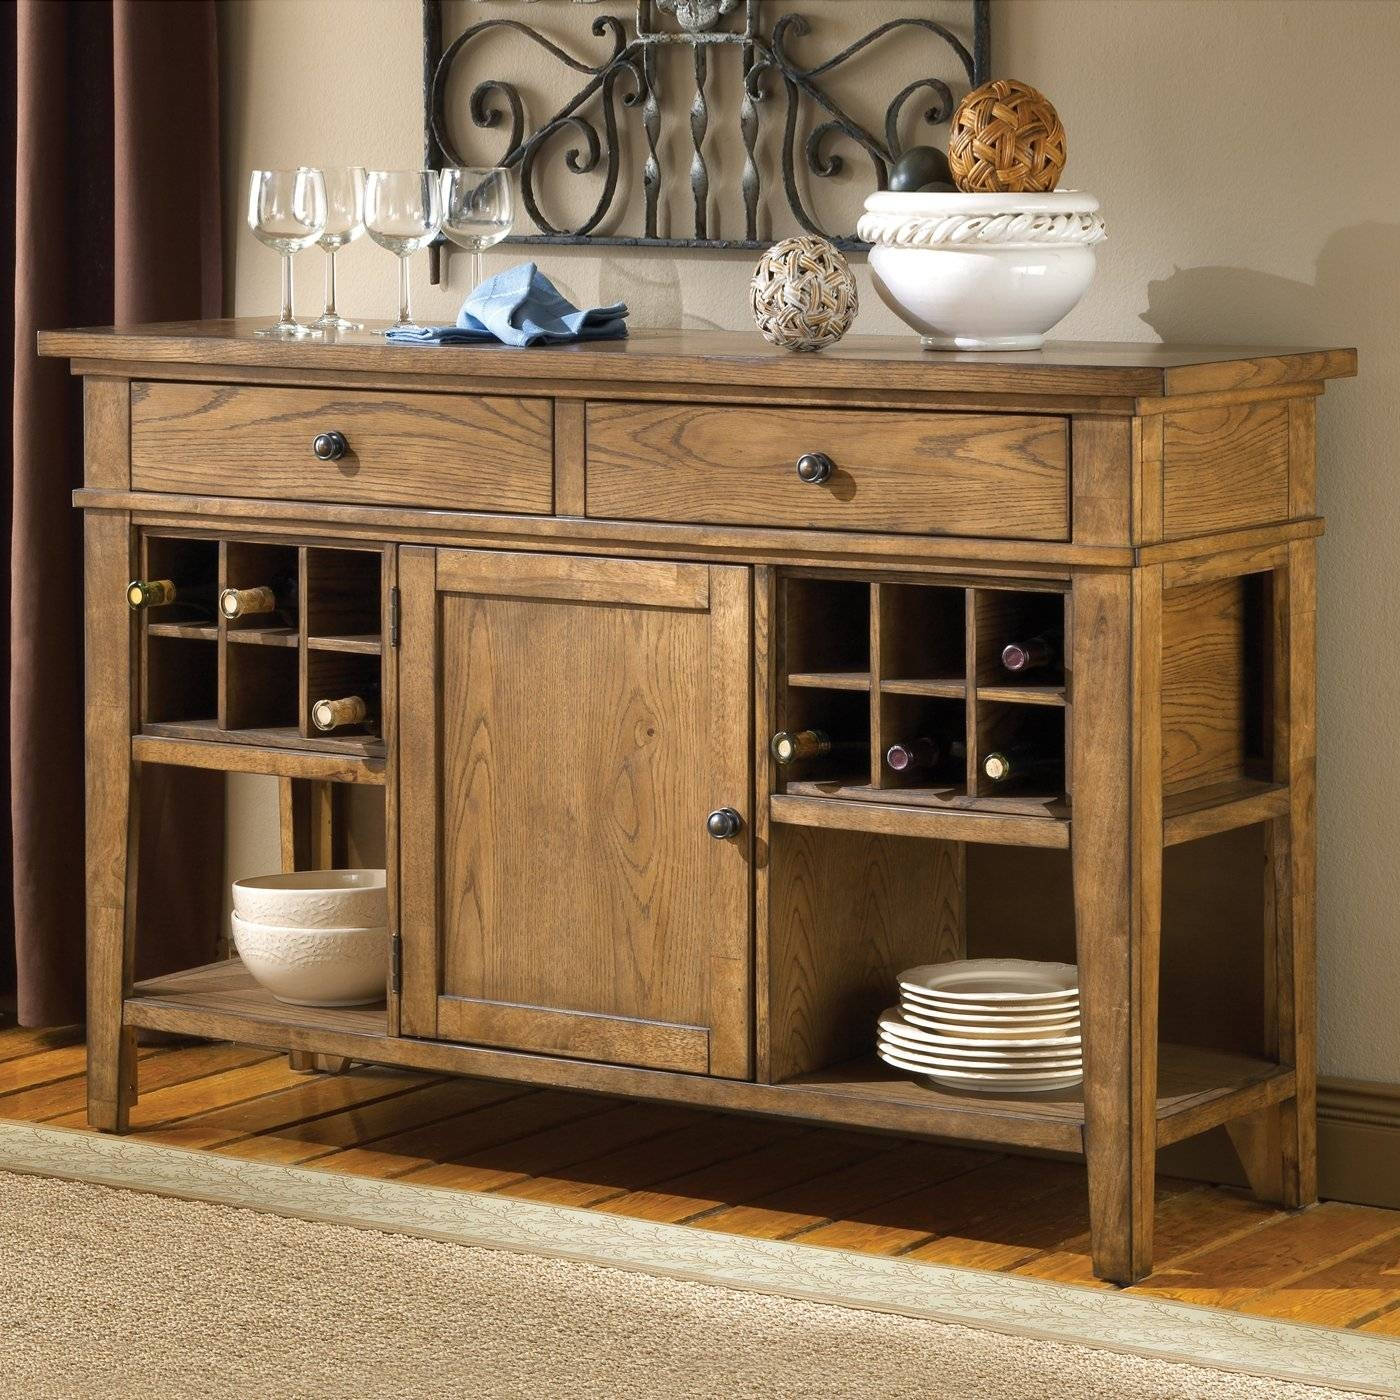 Traditional Dining Room Sideboards And Buffets : Rustic Dining Intended For 2017 Rustic Buffet Sideboards (#15 of 15)